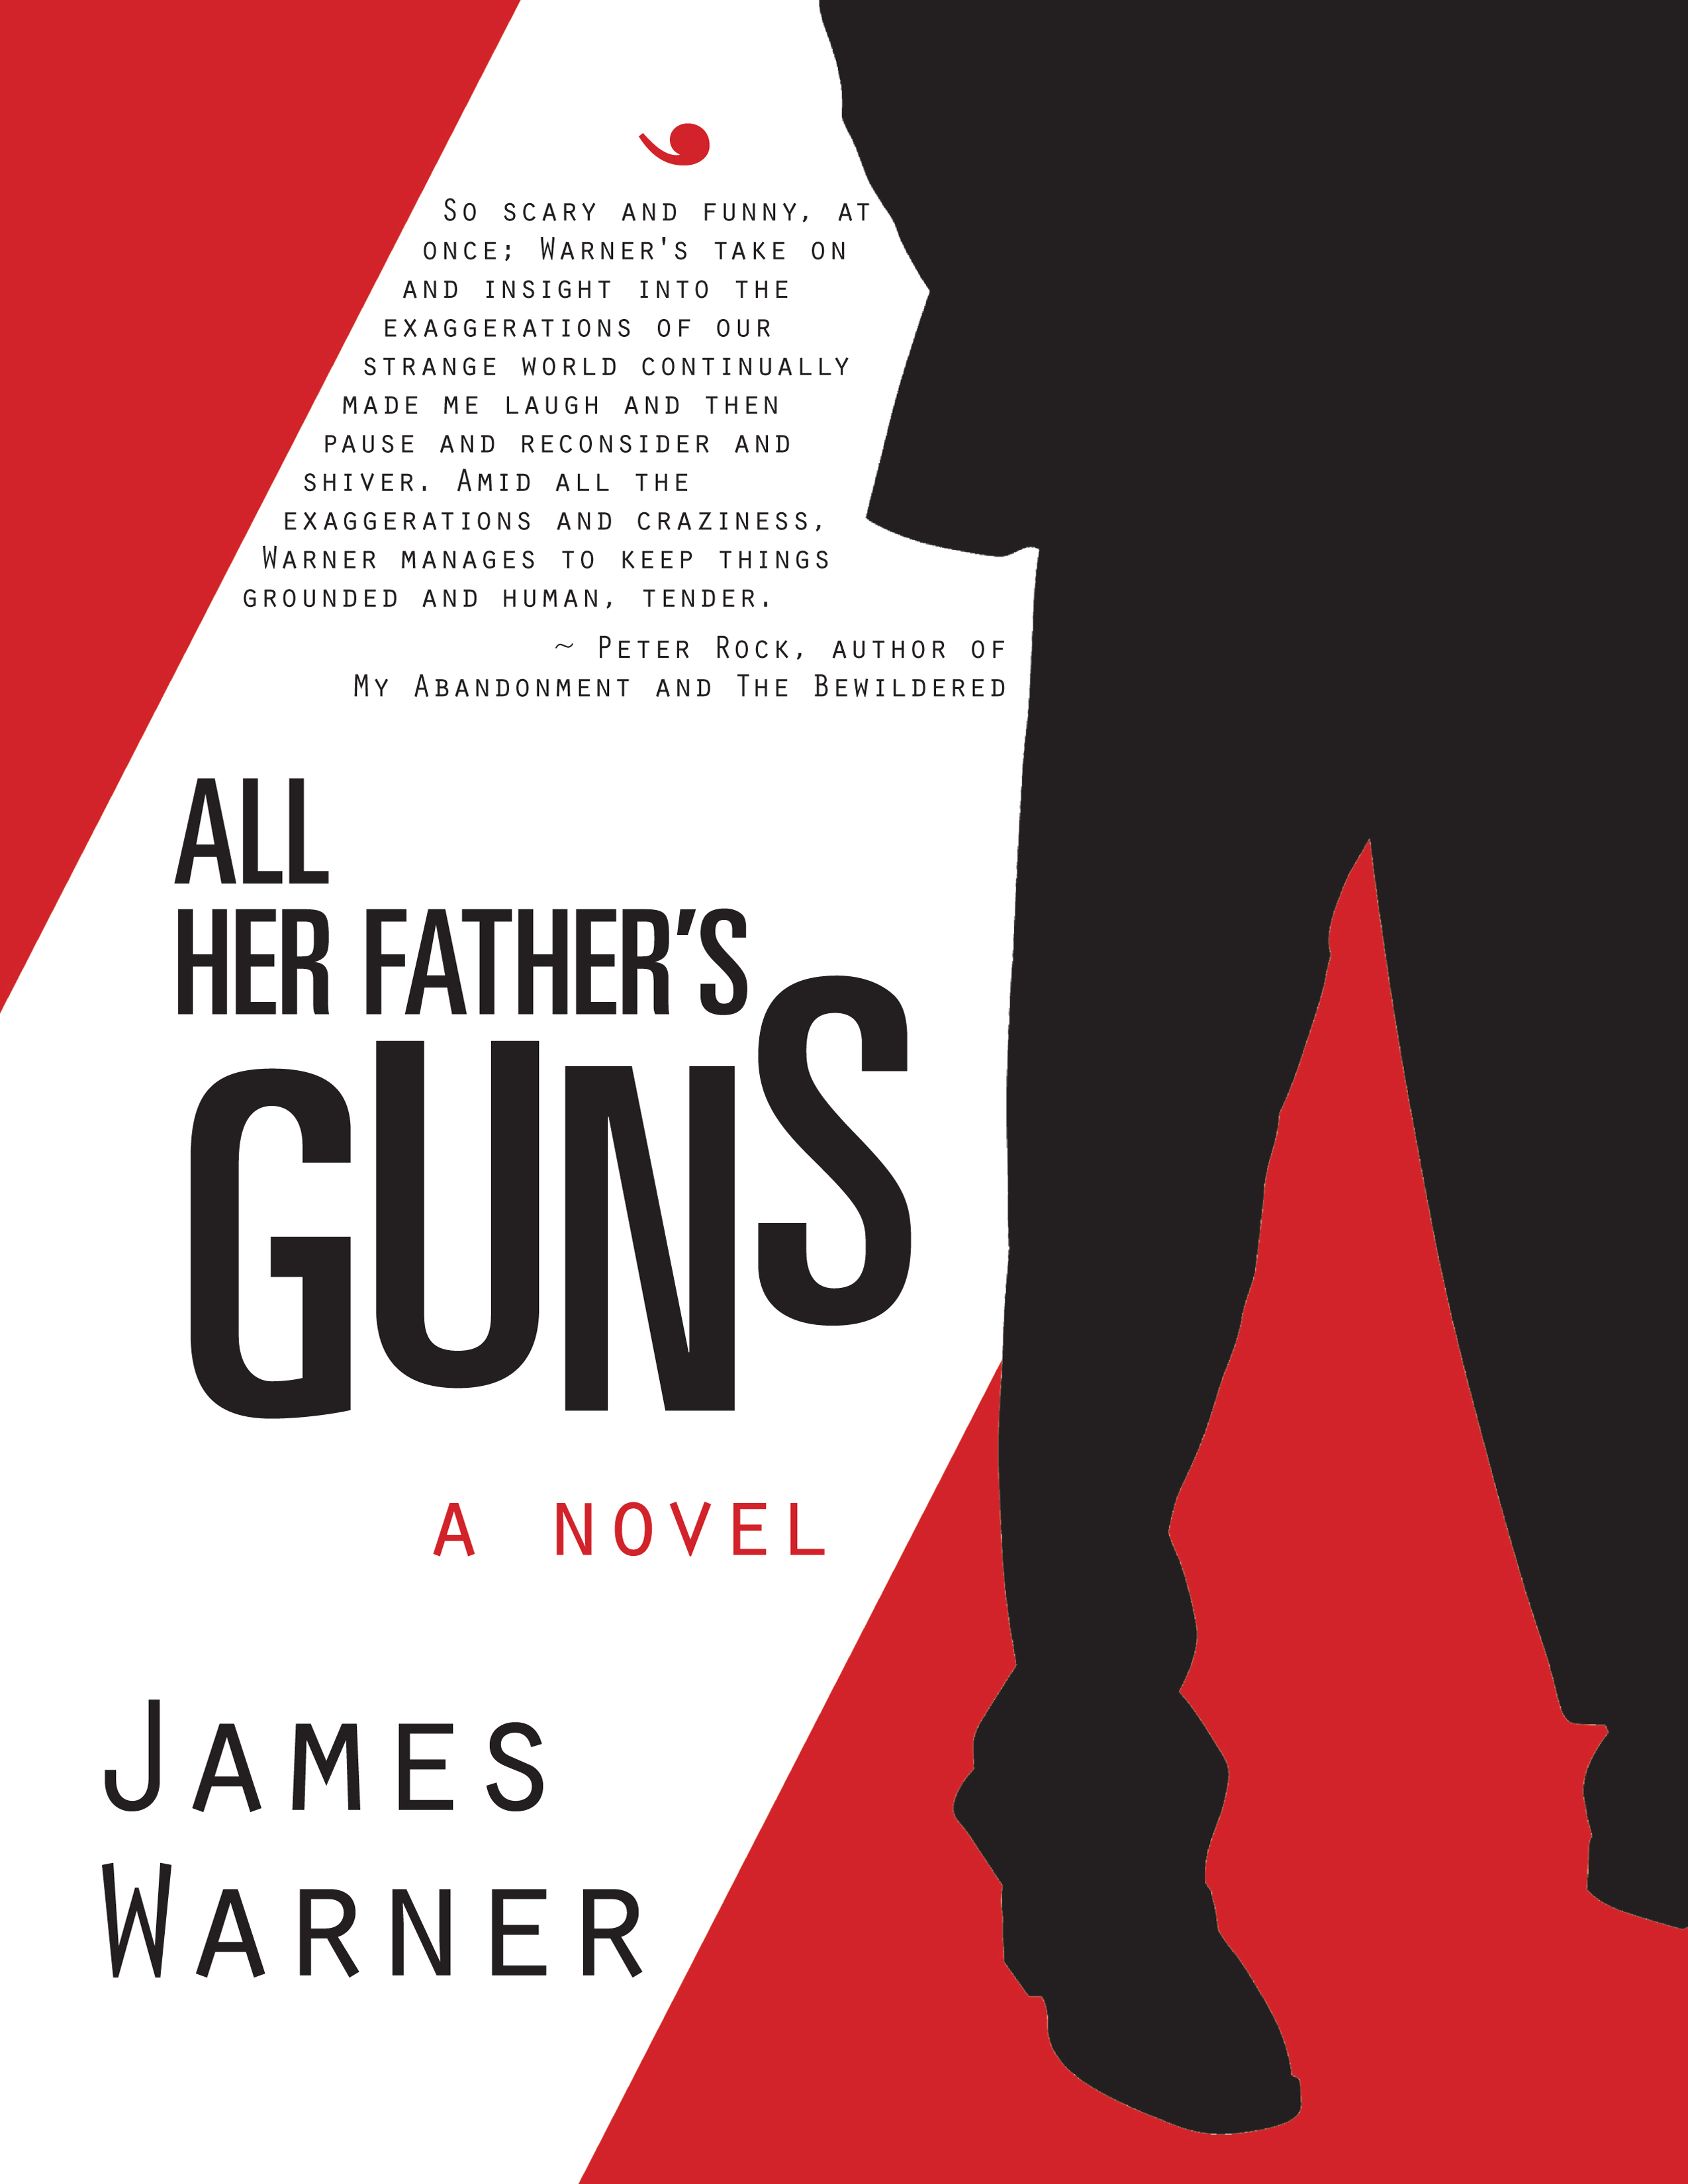 http://www.allherfathersguns.com/cover.jpg